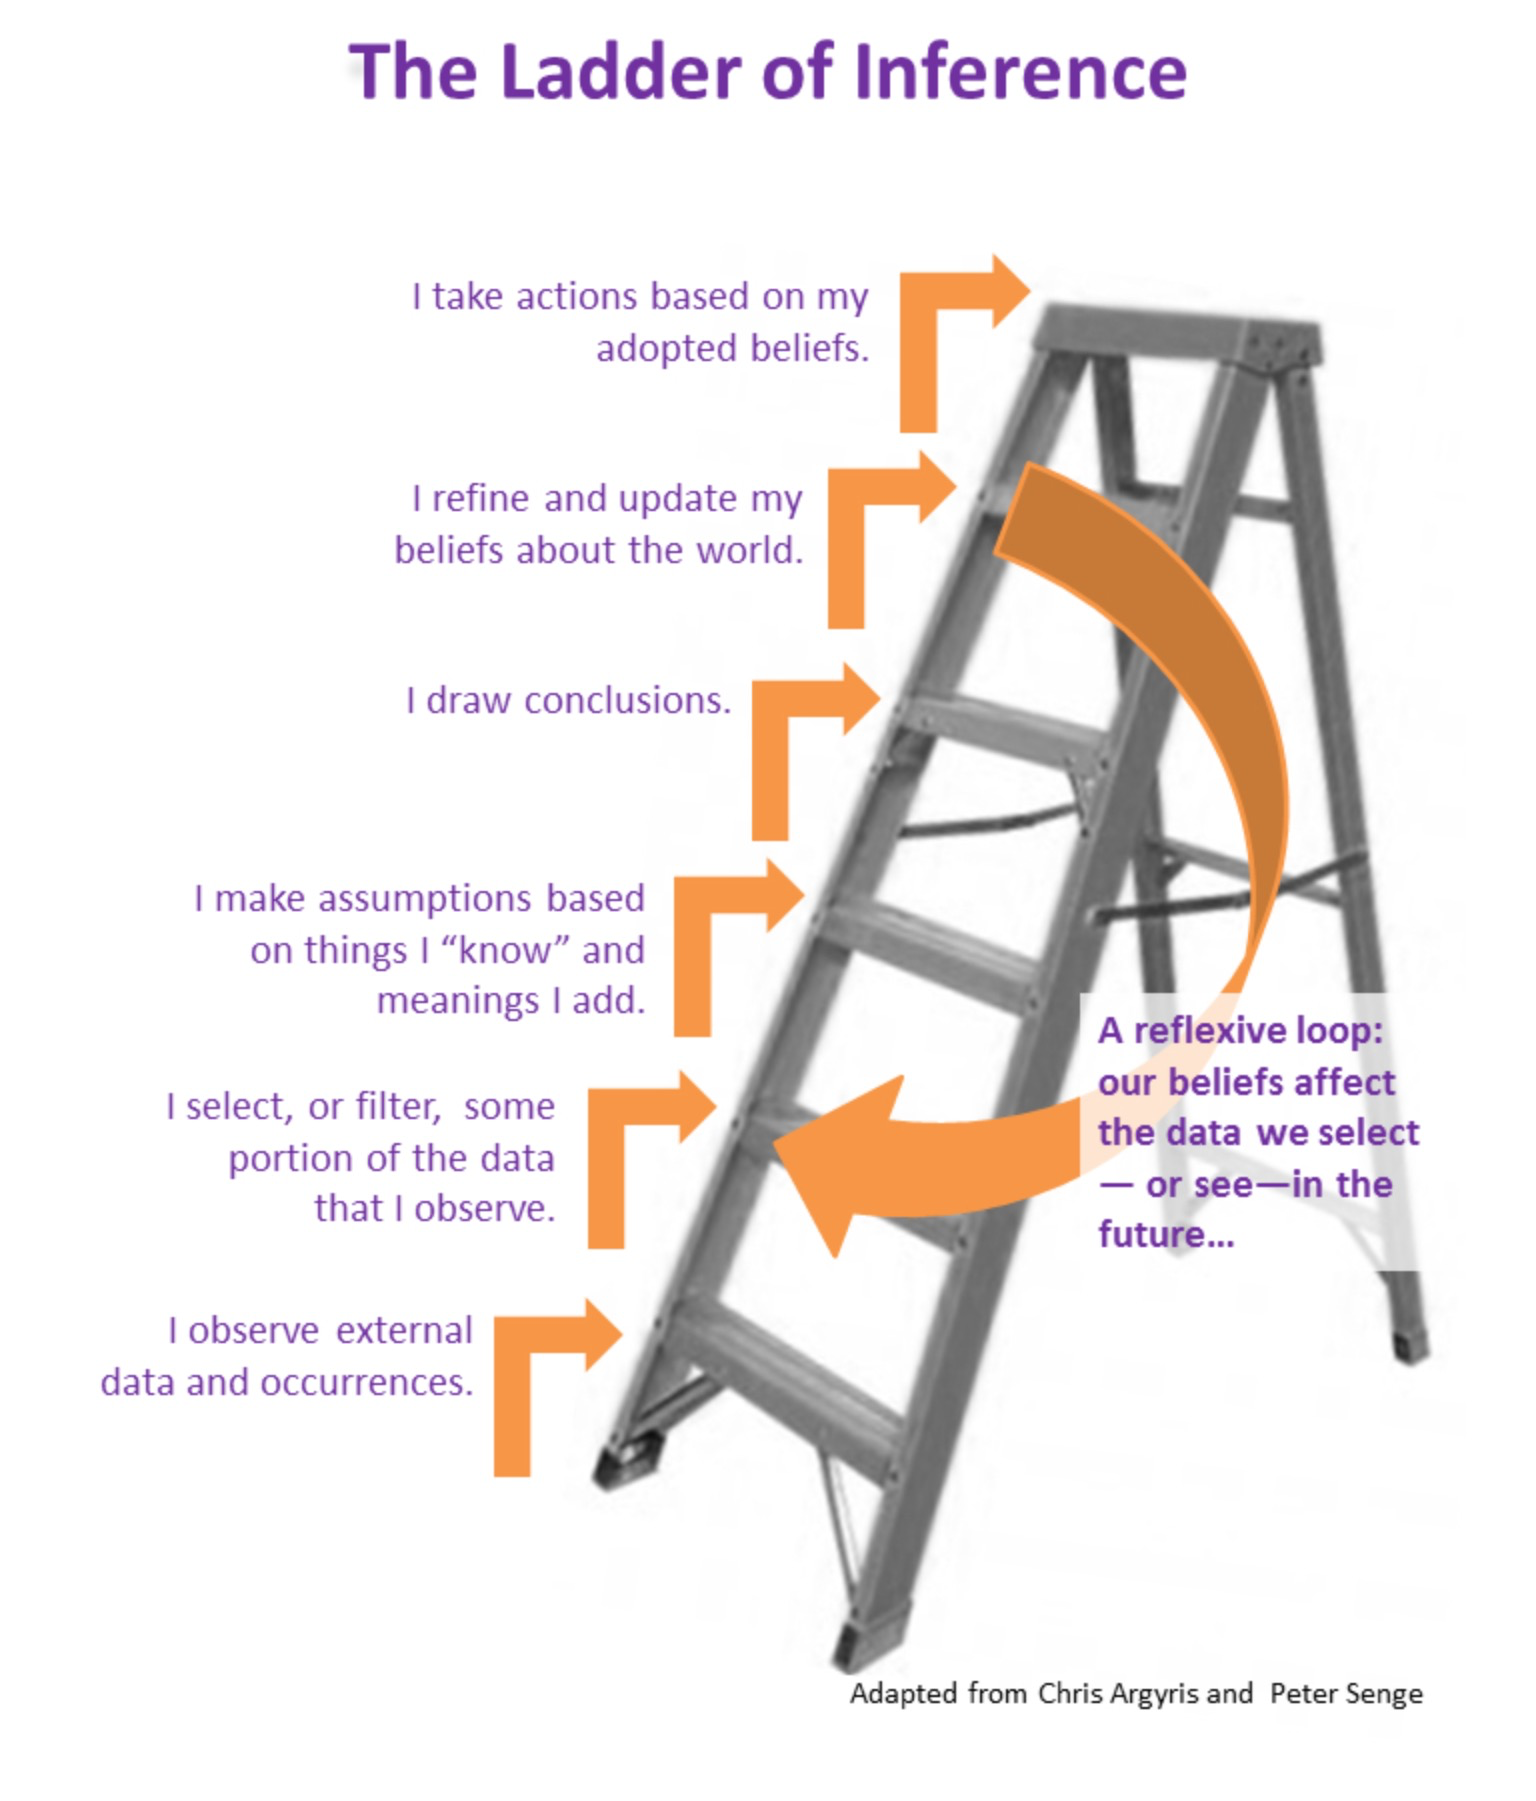 Please take a moment to examine the ladder. Does social media, our current political climate, and your cut-off relationships make more sense?